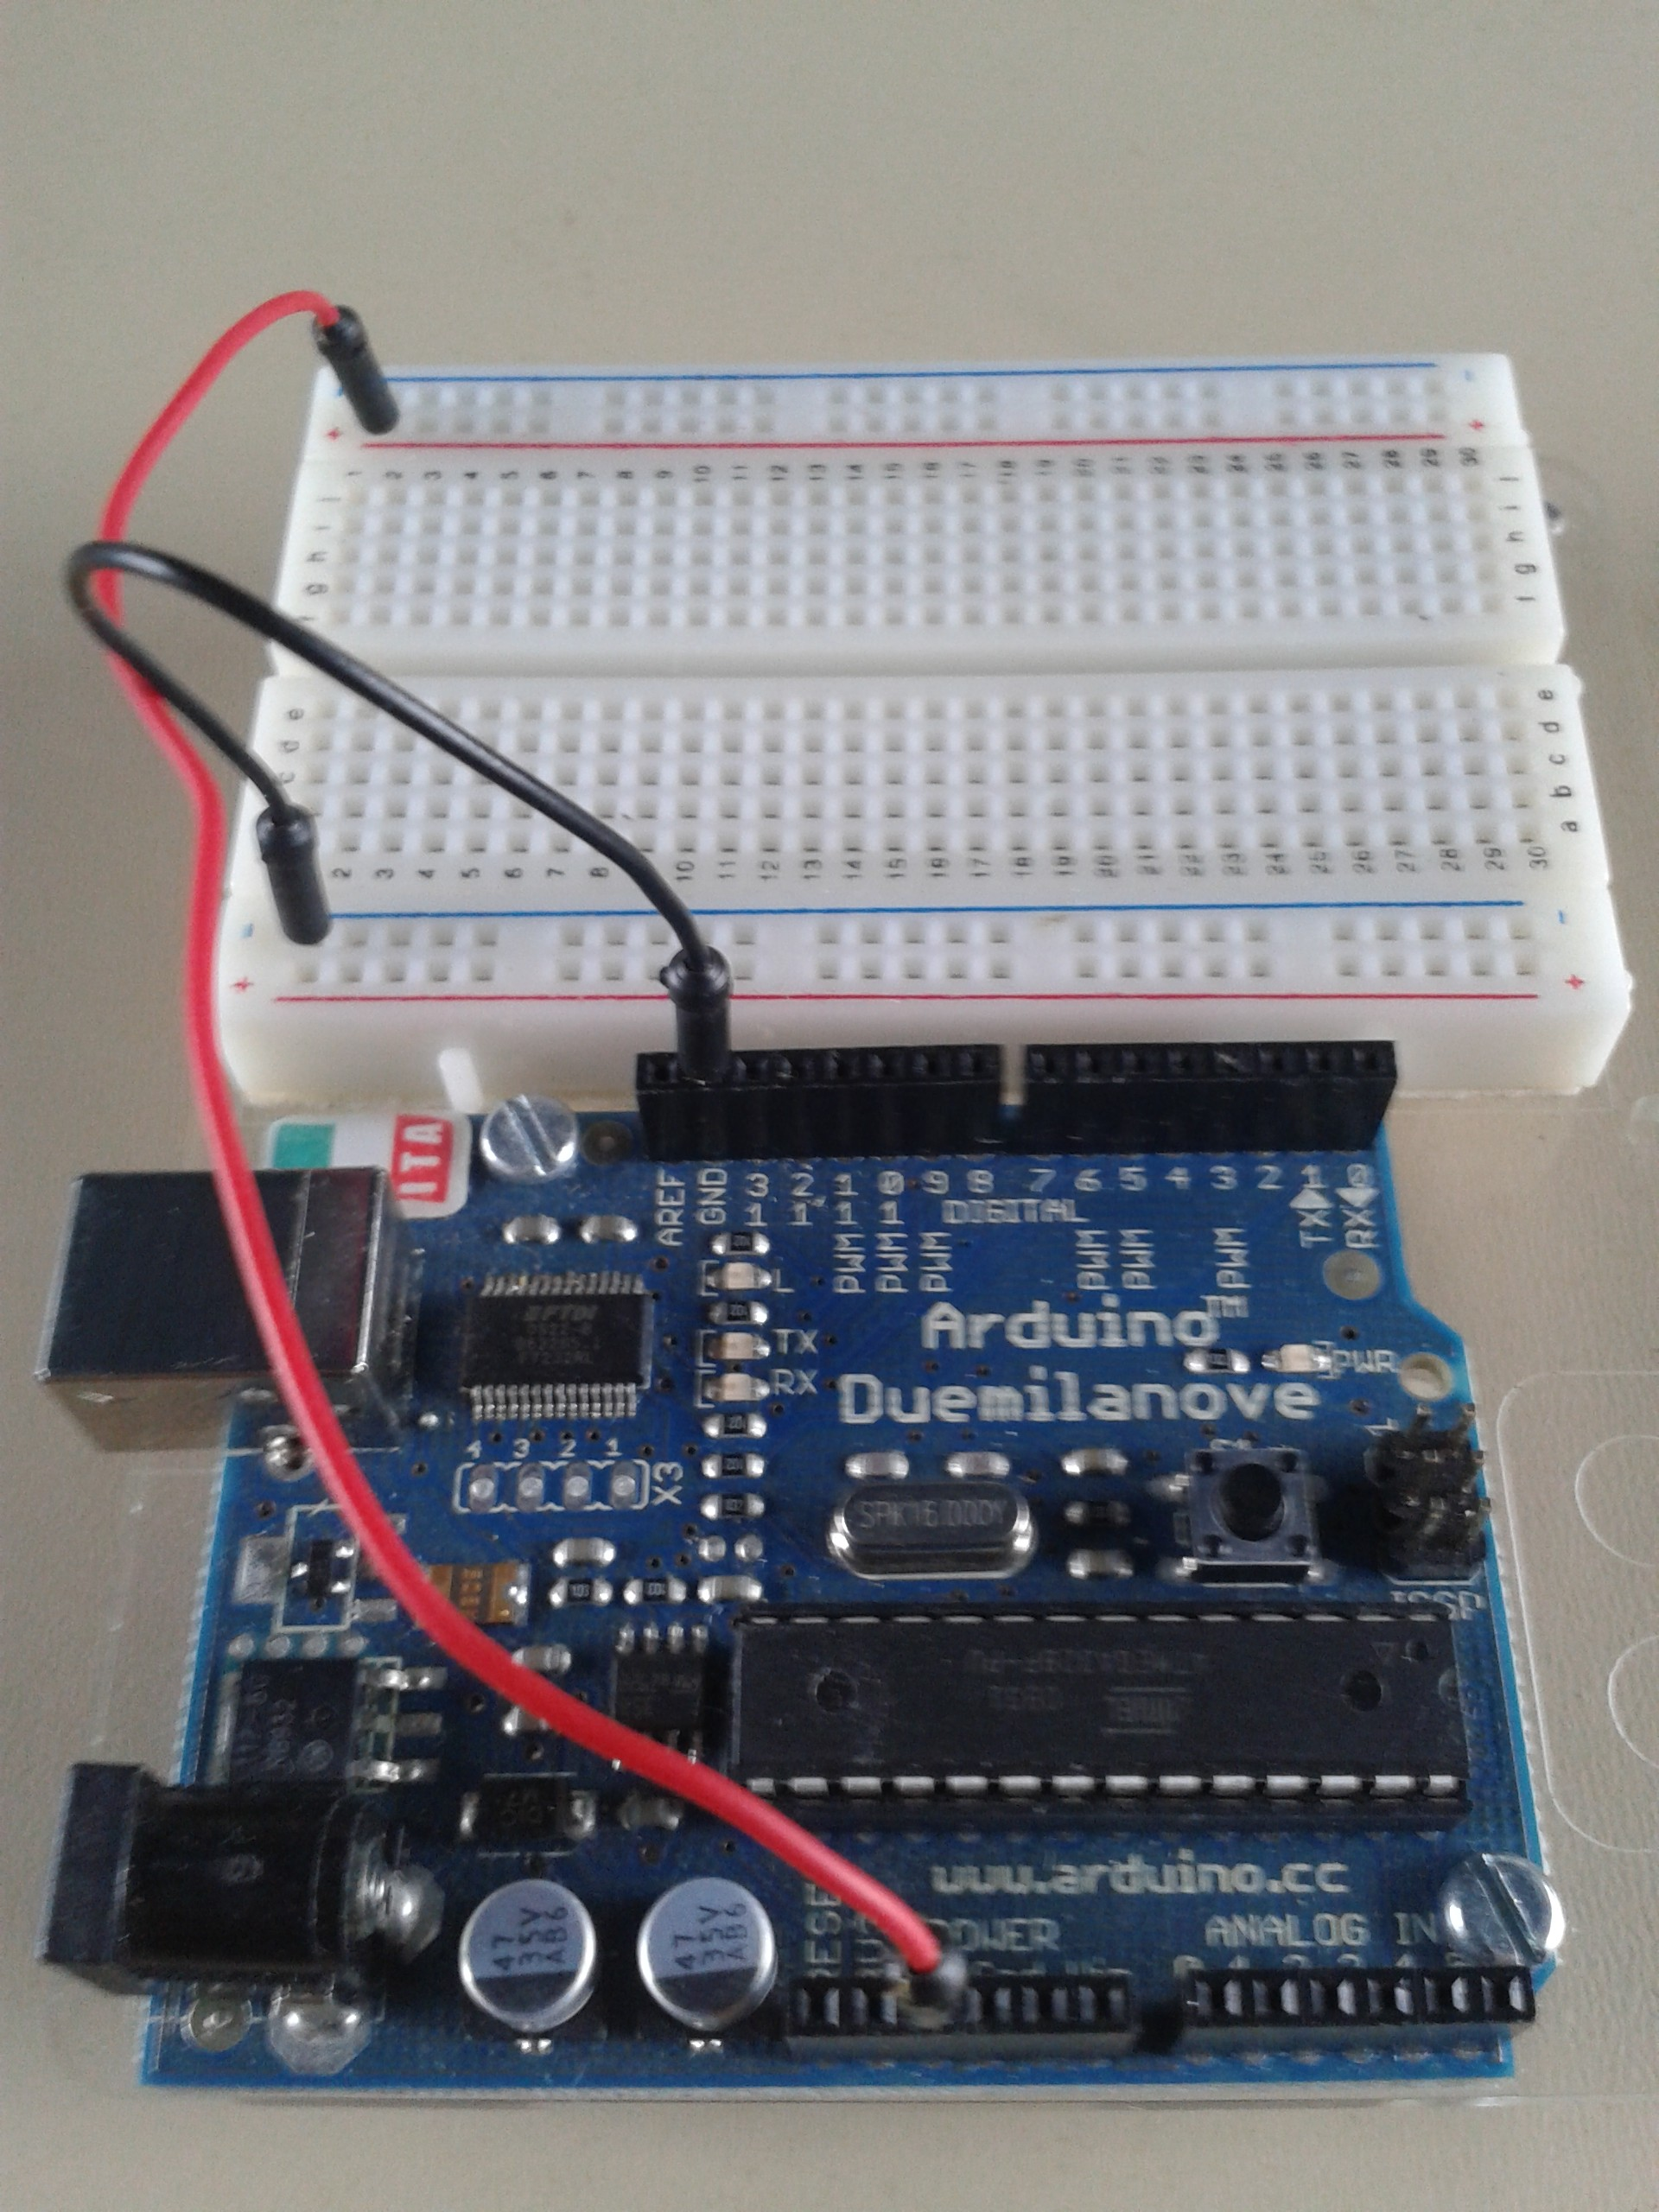 Getting started with Arduino: morse keyer – Ernest